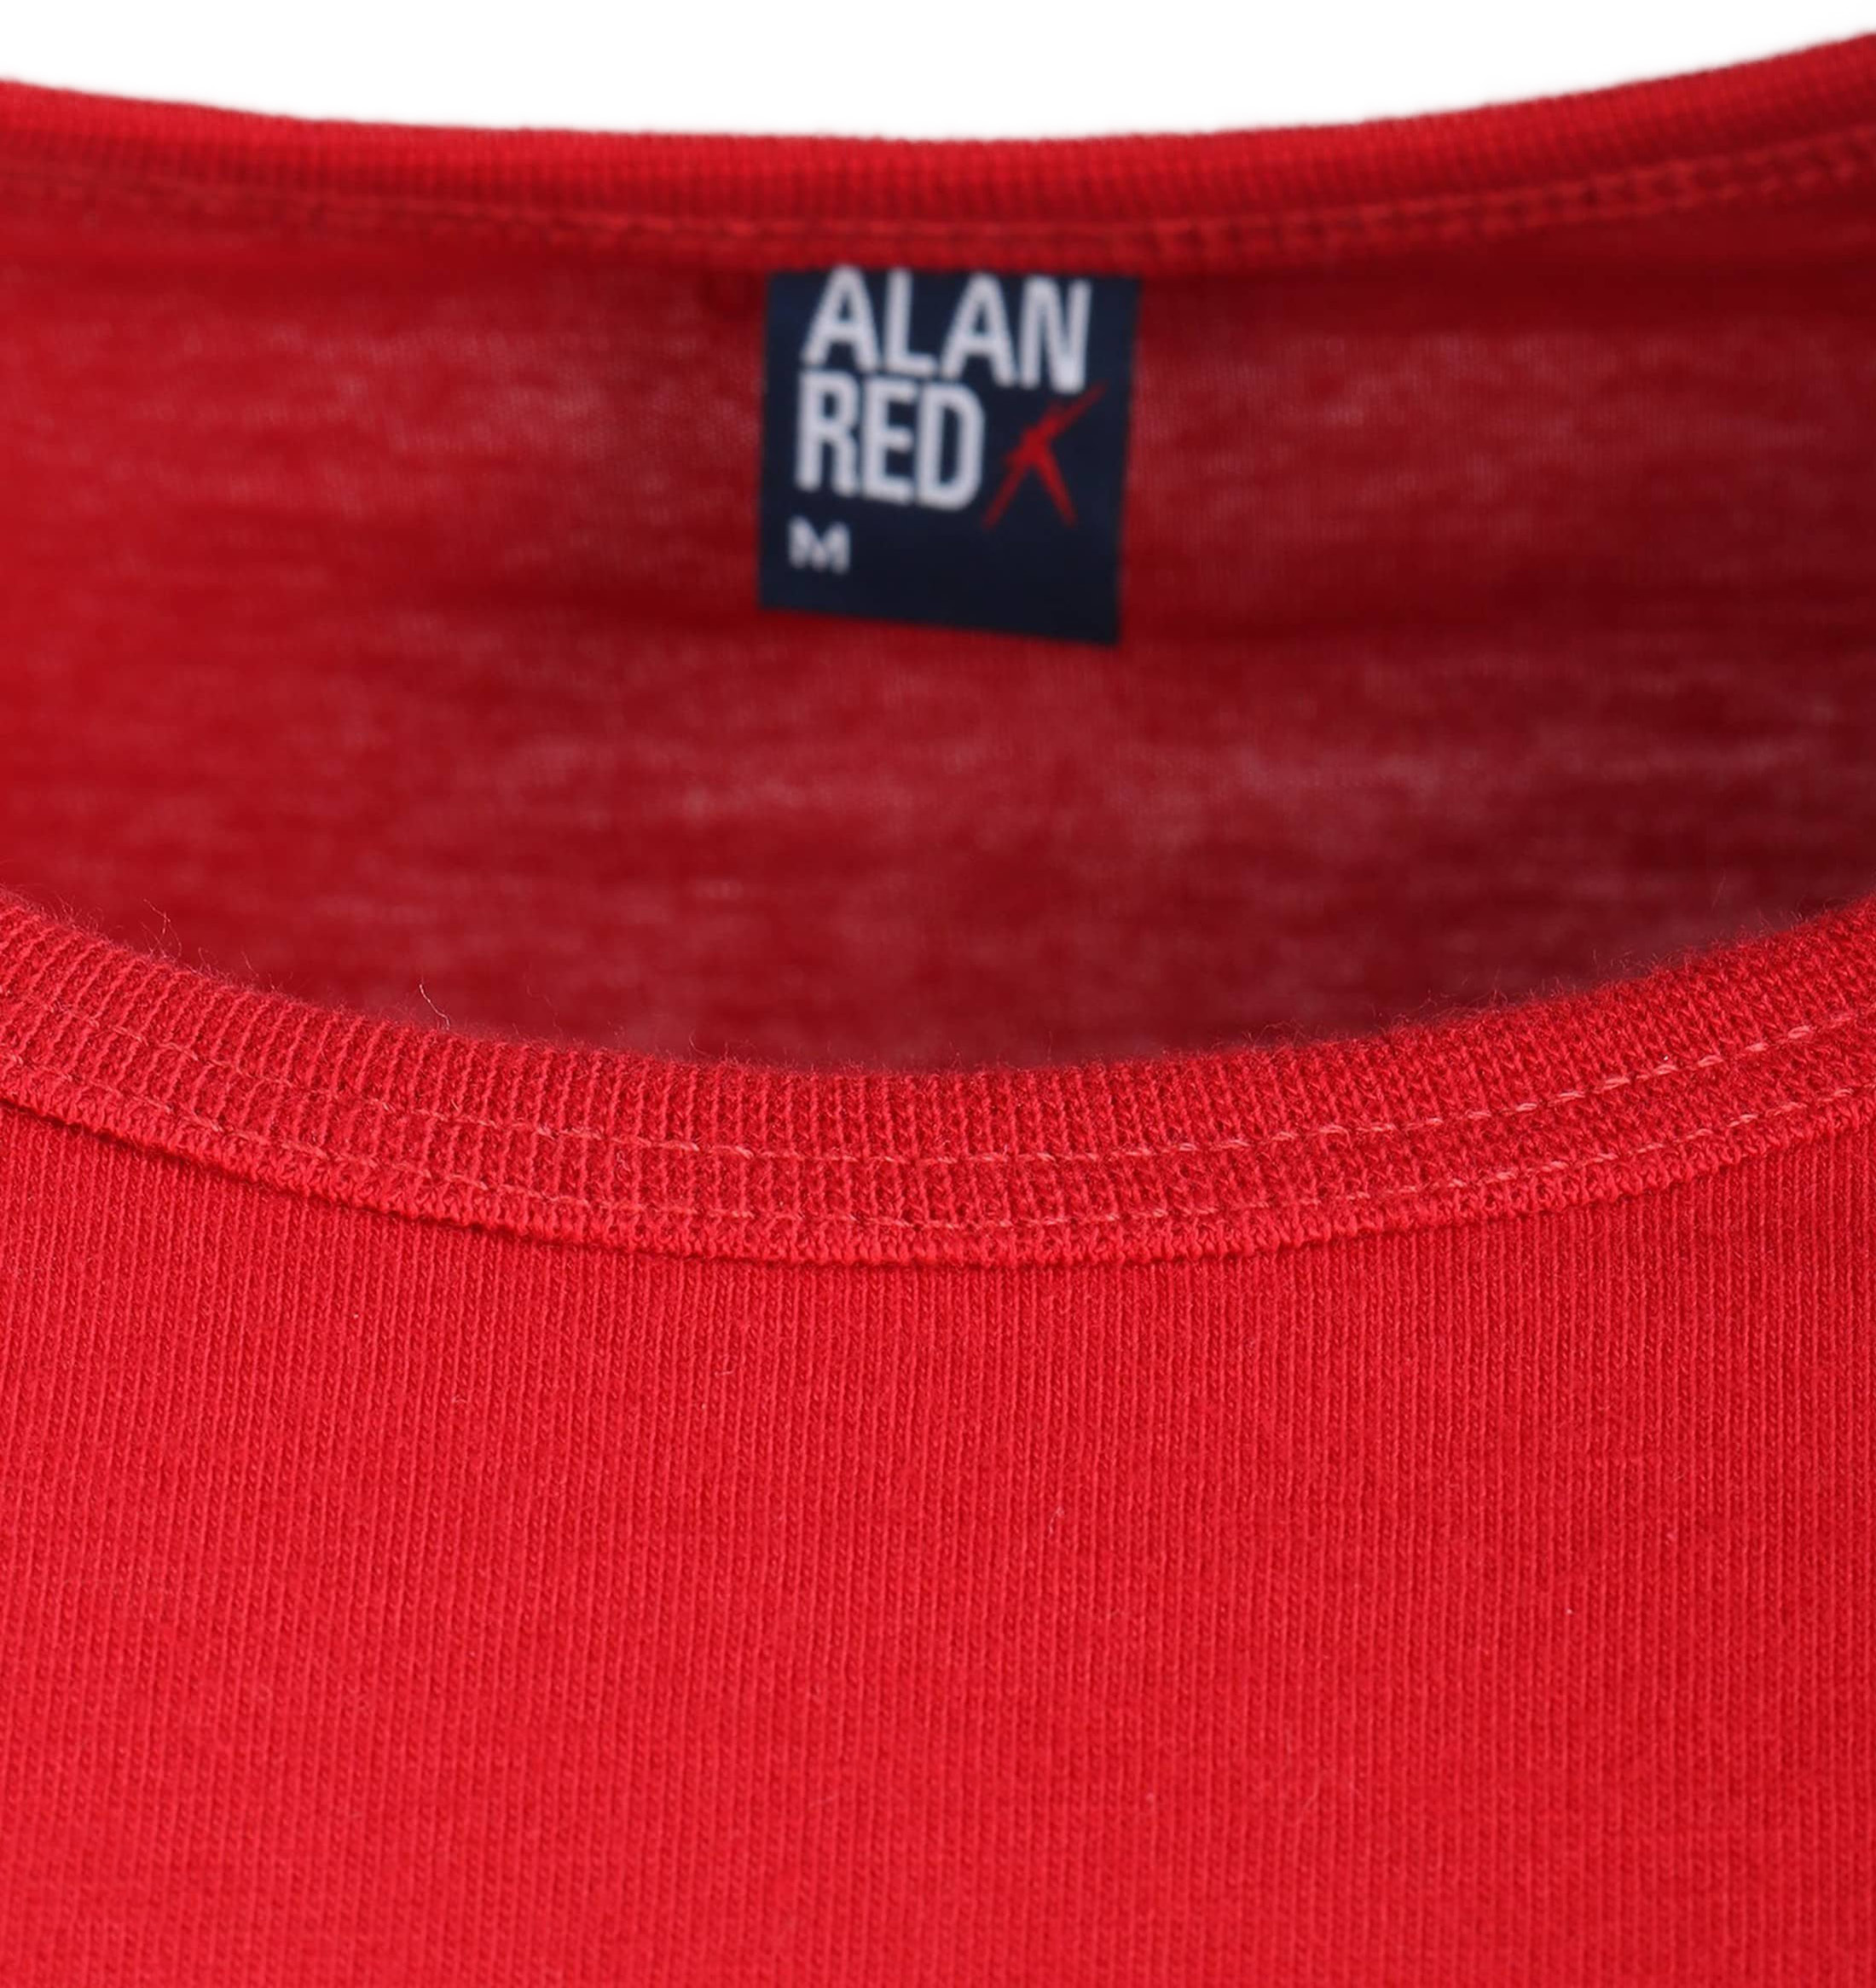 Alan Red Derby O-Hals T-Shirt Stone Red (1Pack) foto 1